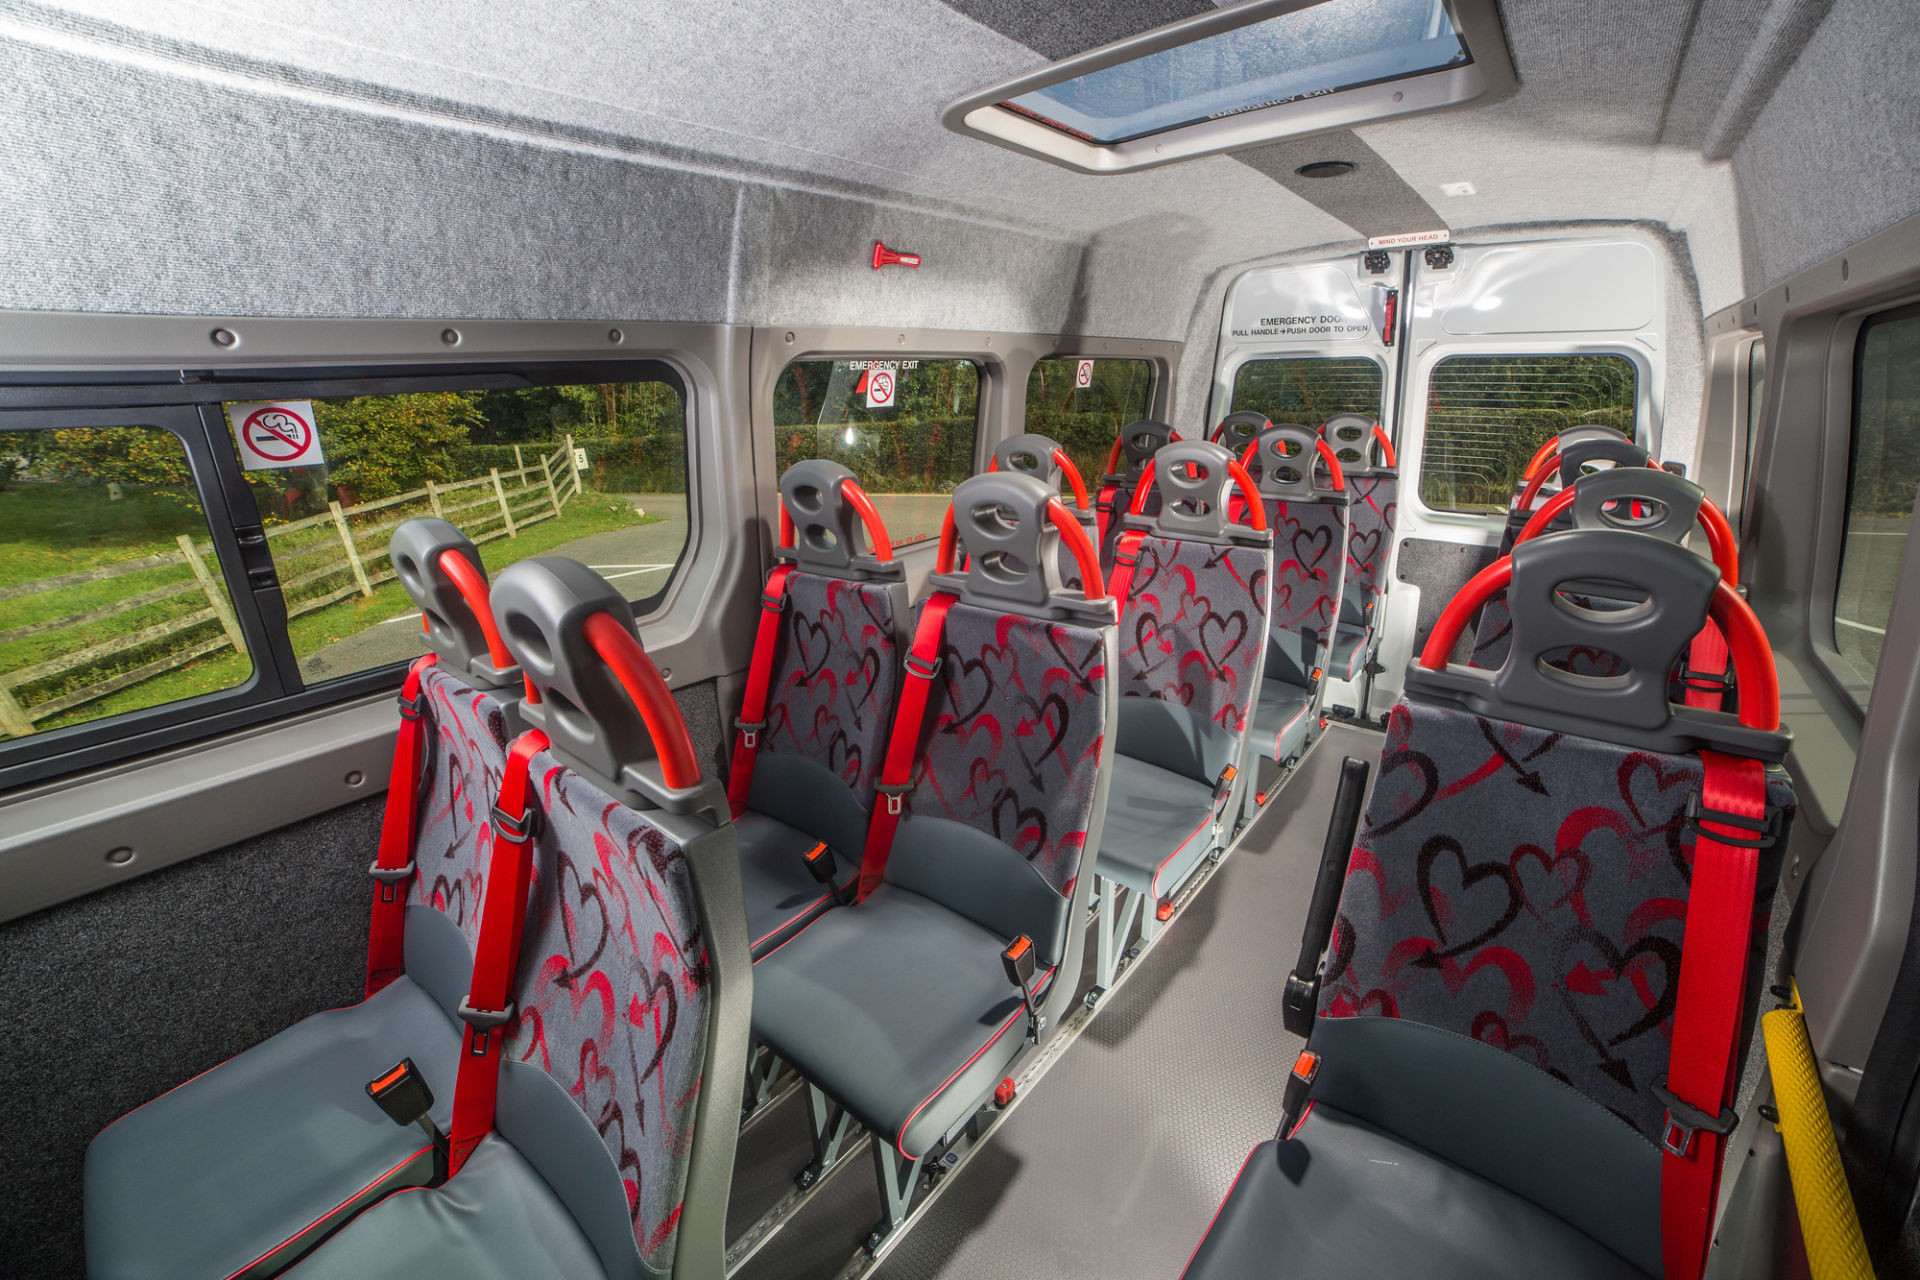 2018 Renault Master 14 Seater Accessible Minibus for Sale - Image 2